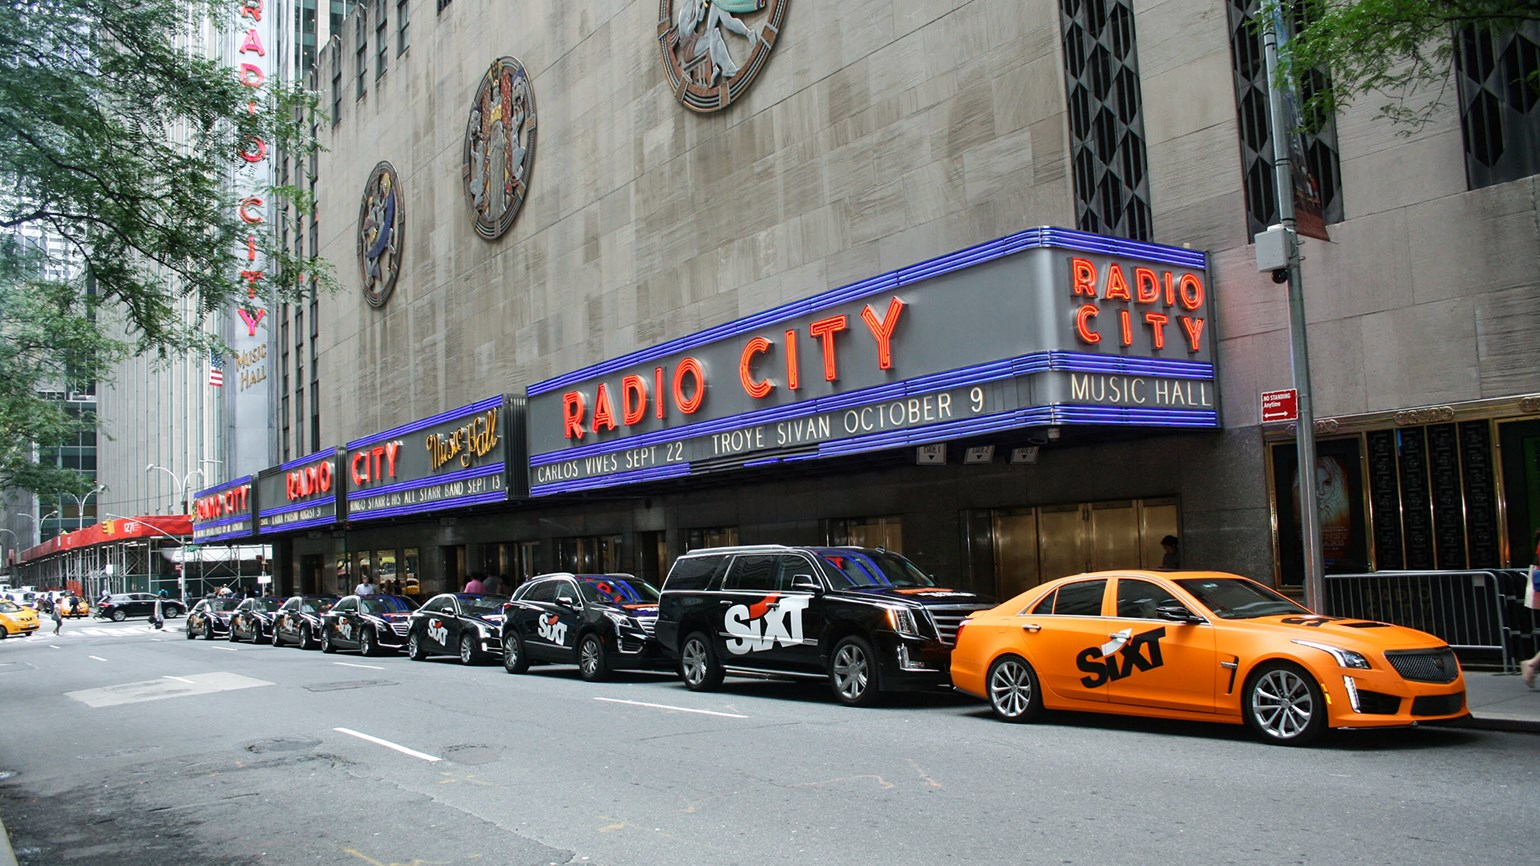 sixt focuses on luxury rentals and top service in u.s